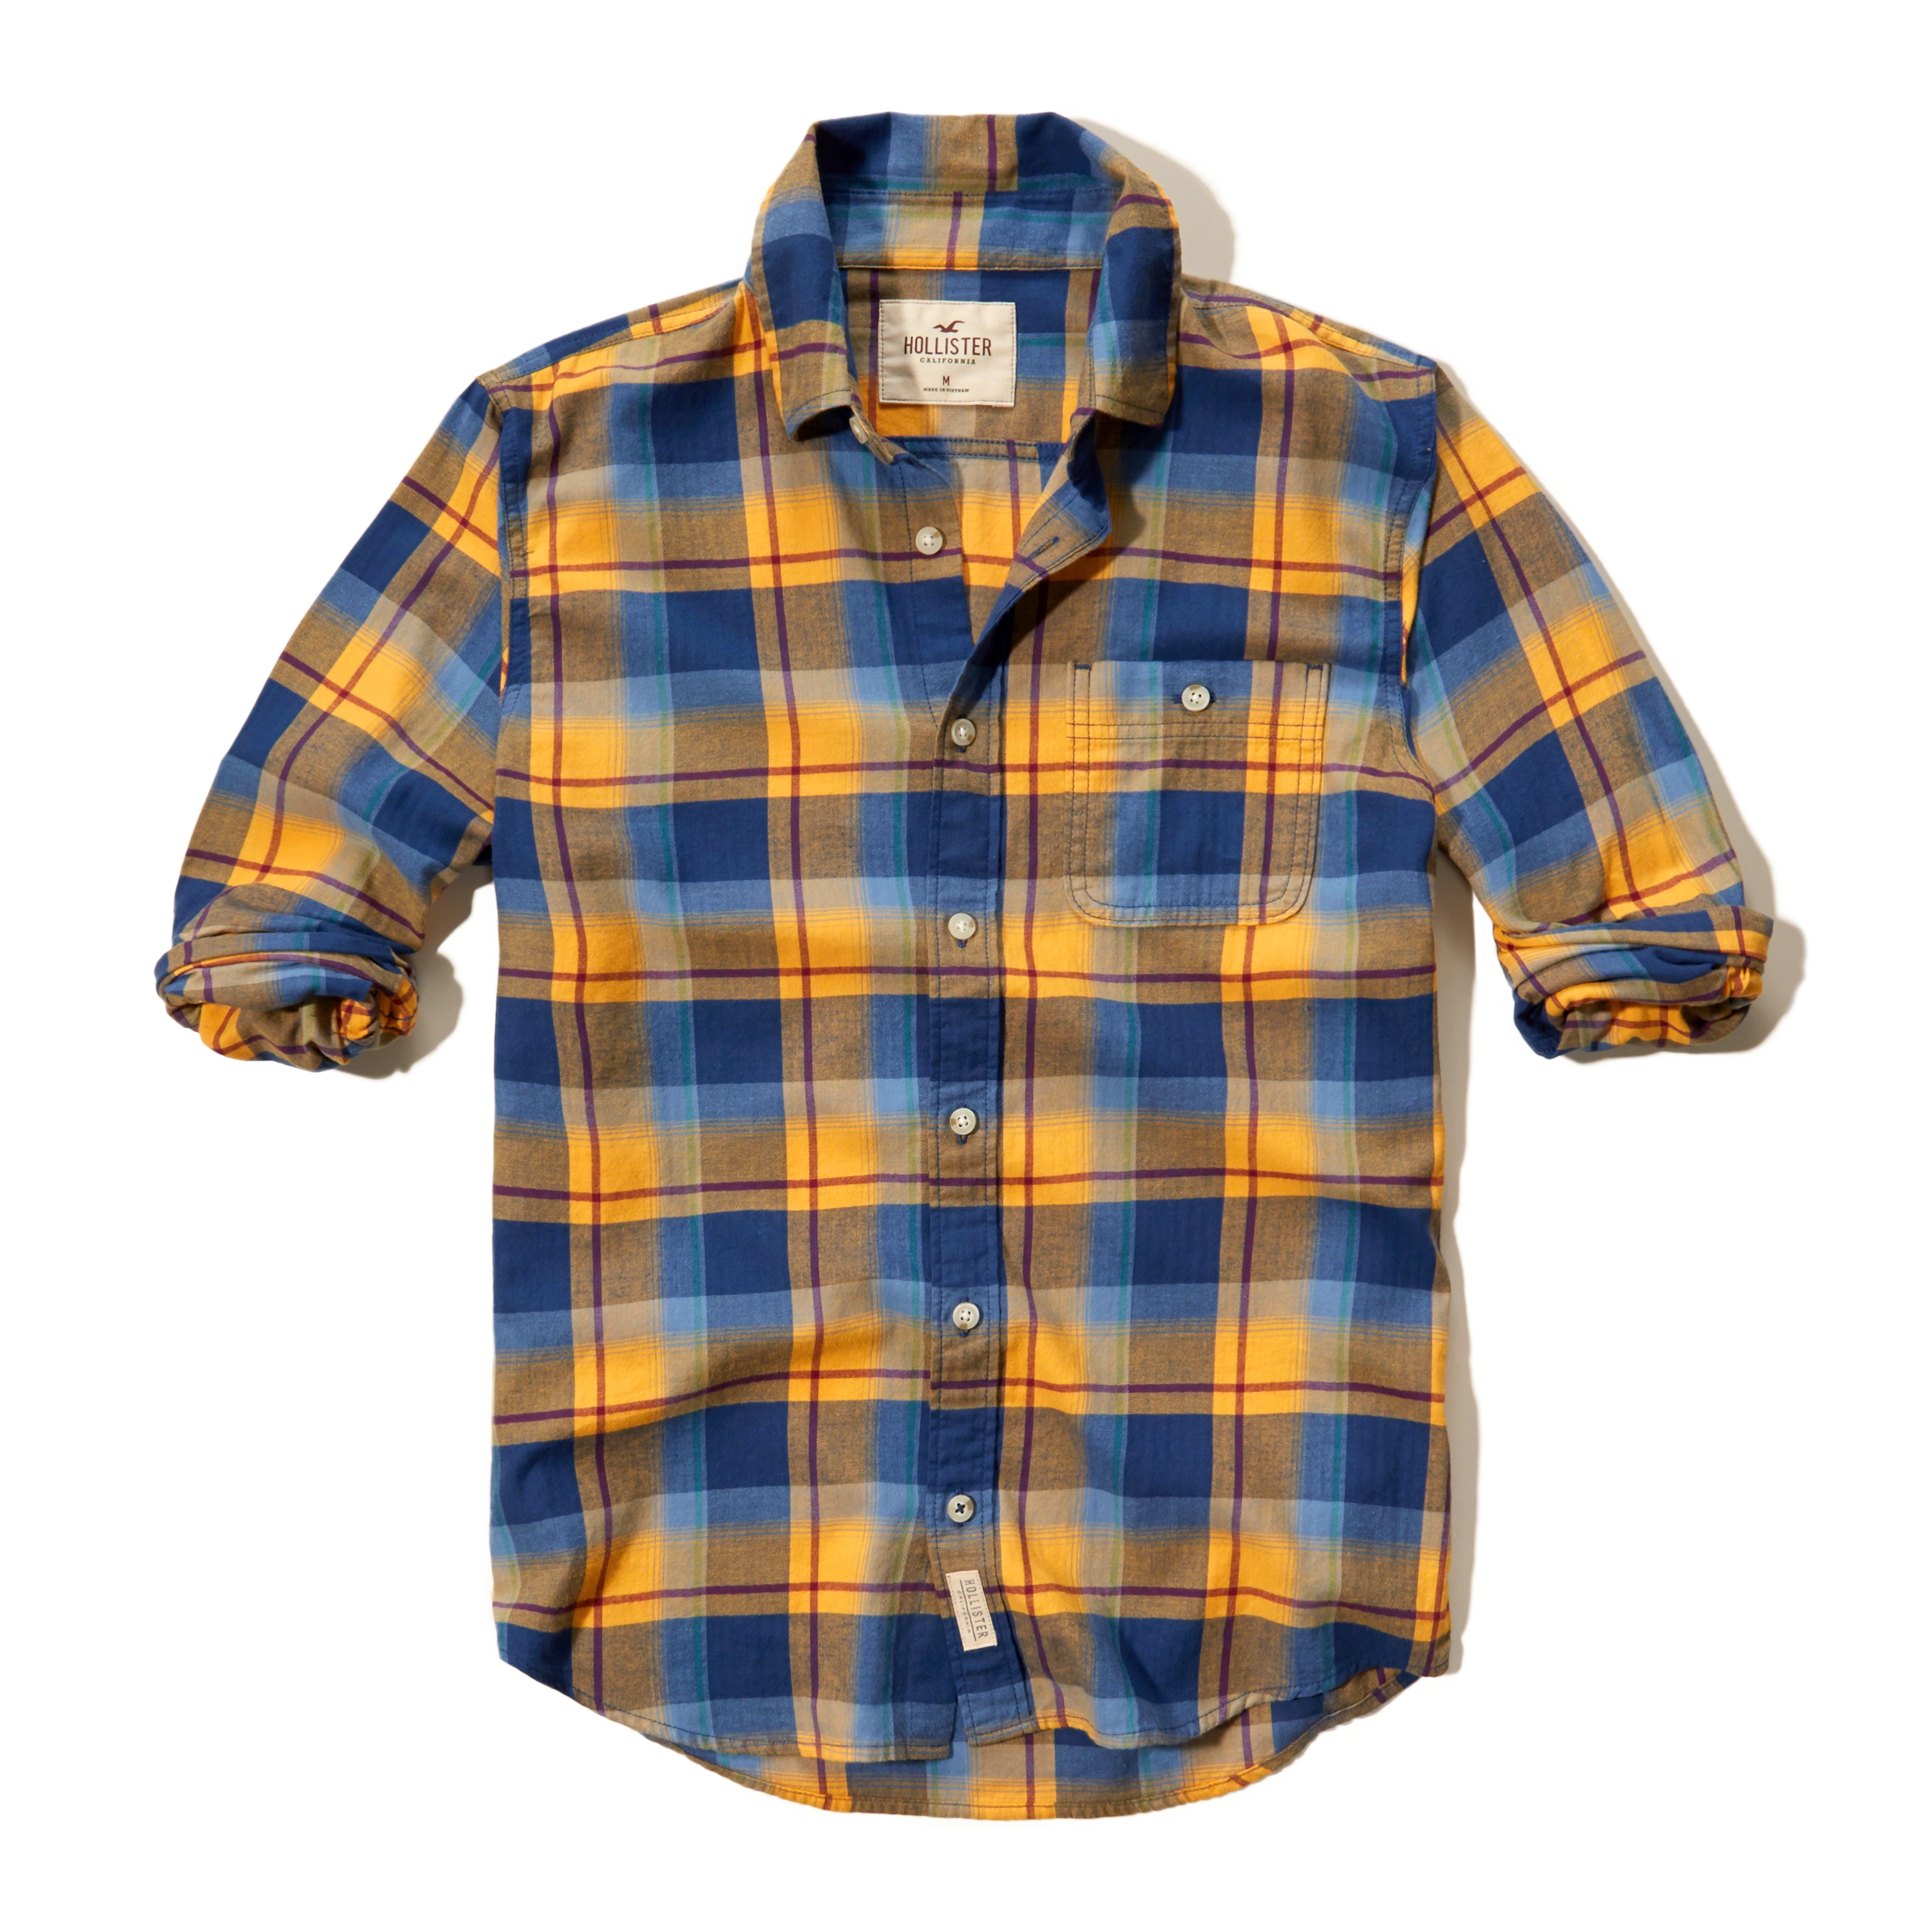 Hollister plaid brushed cotton shirt in blue for men lyst for Blue and yellow plaid dress shirt